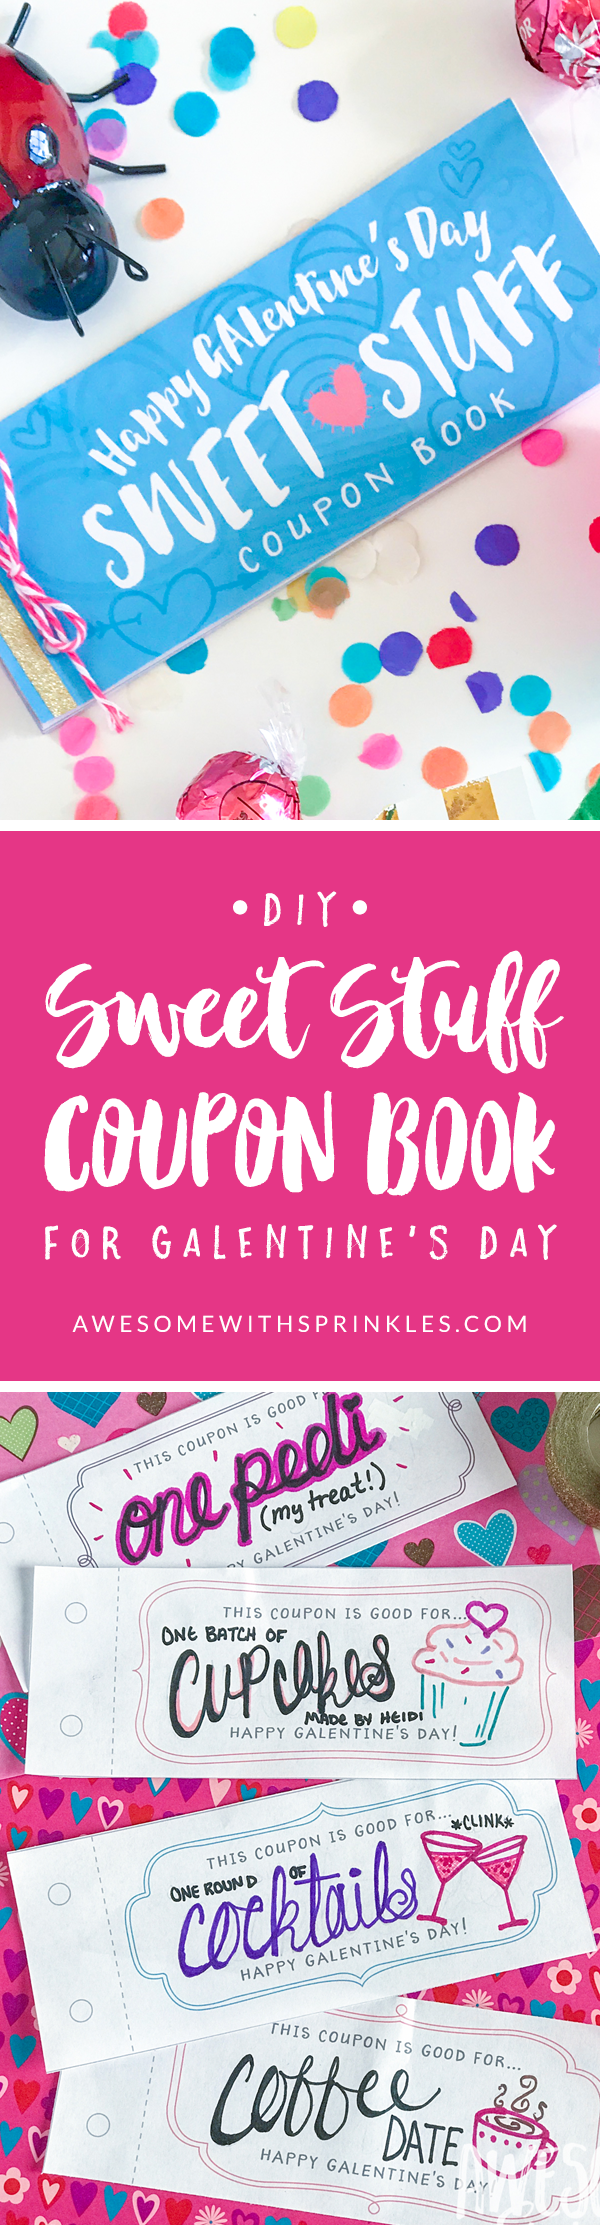 "DIY ""Sweet Stuff"" Coupon Books for Galentine's Day 